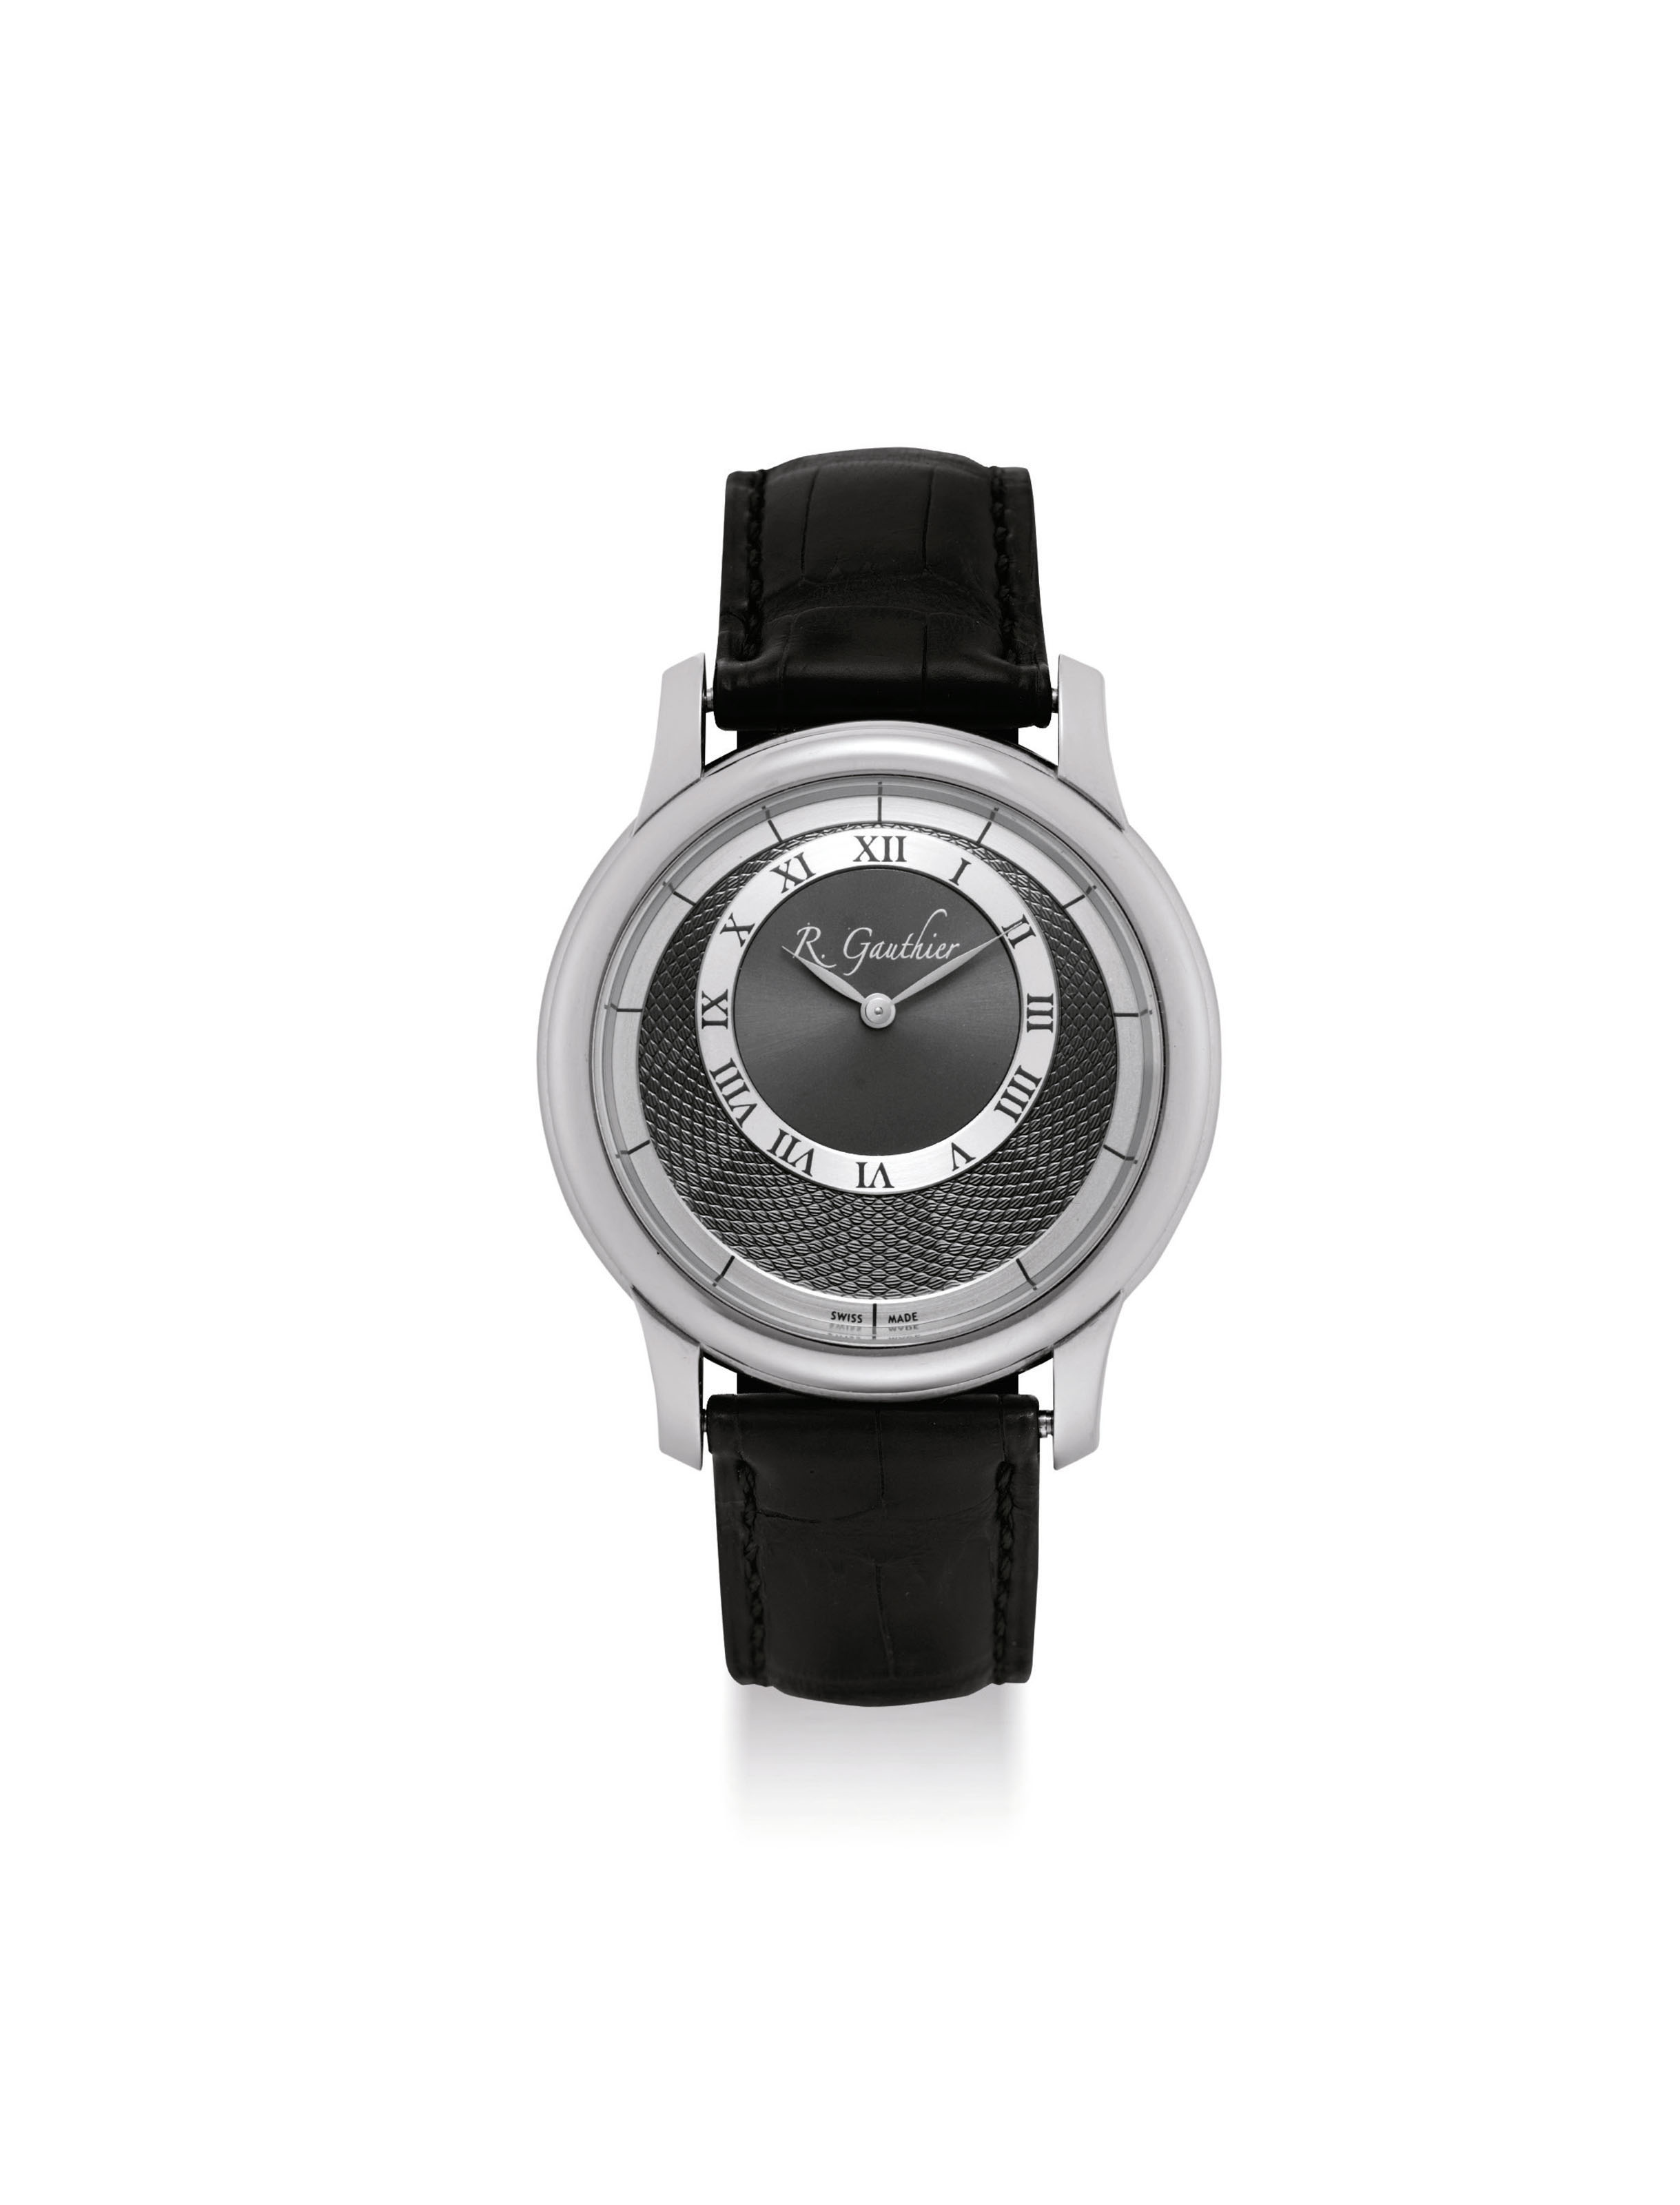 ROMAIN GAUTHIER. A FINE PLATINUM LIMITED EDITION BACK WINDING WRISTWATCH WITH ECCENTRIC DIAL